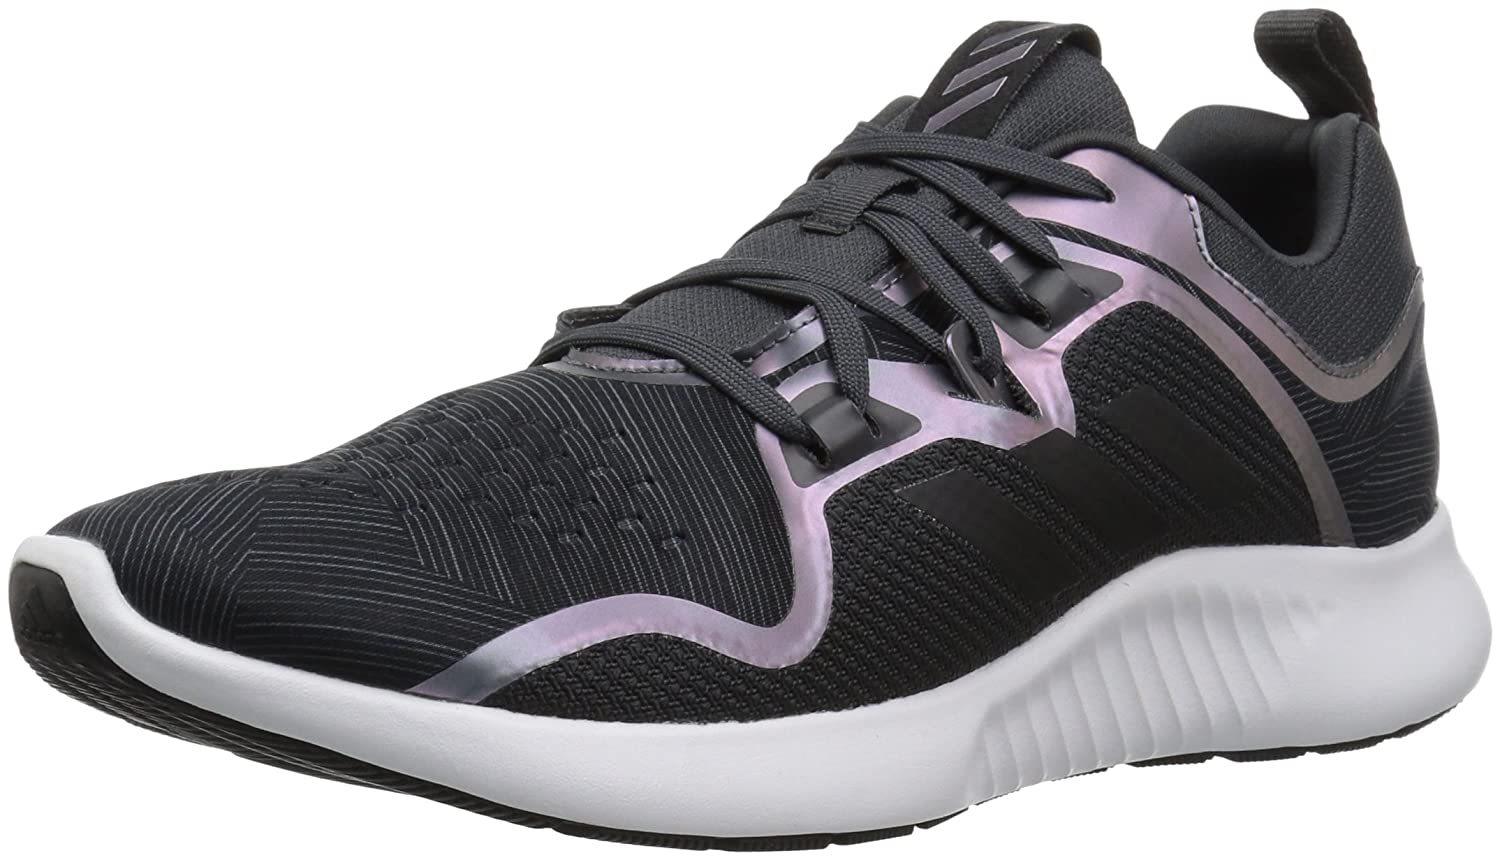 adidas Originals Women's Edgebounce Running Shoe B077XLCHM4 5.5 M US|Carbon/Black/Night Metallic